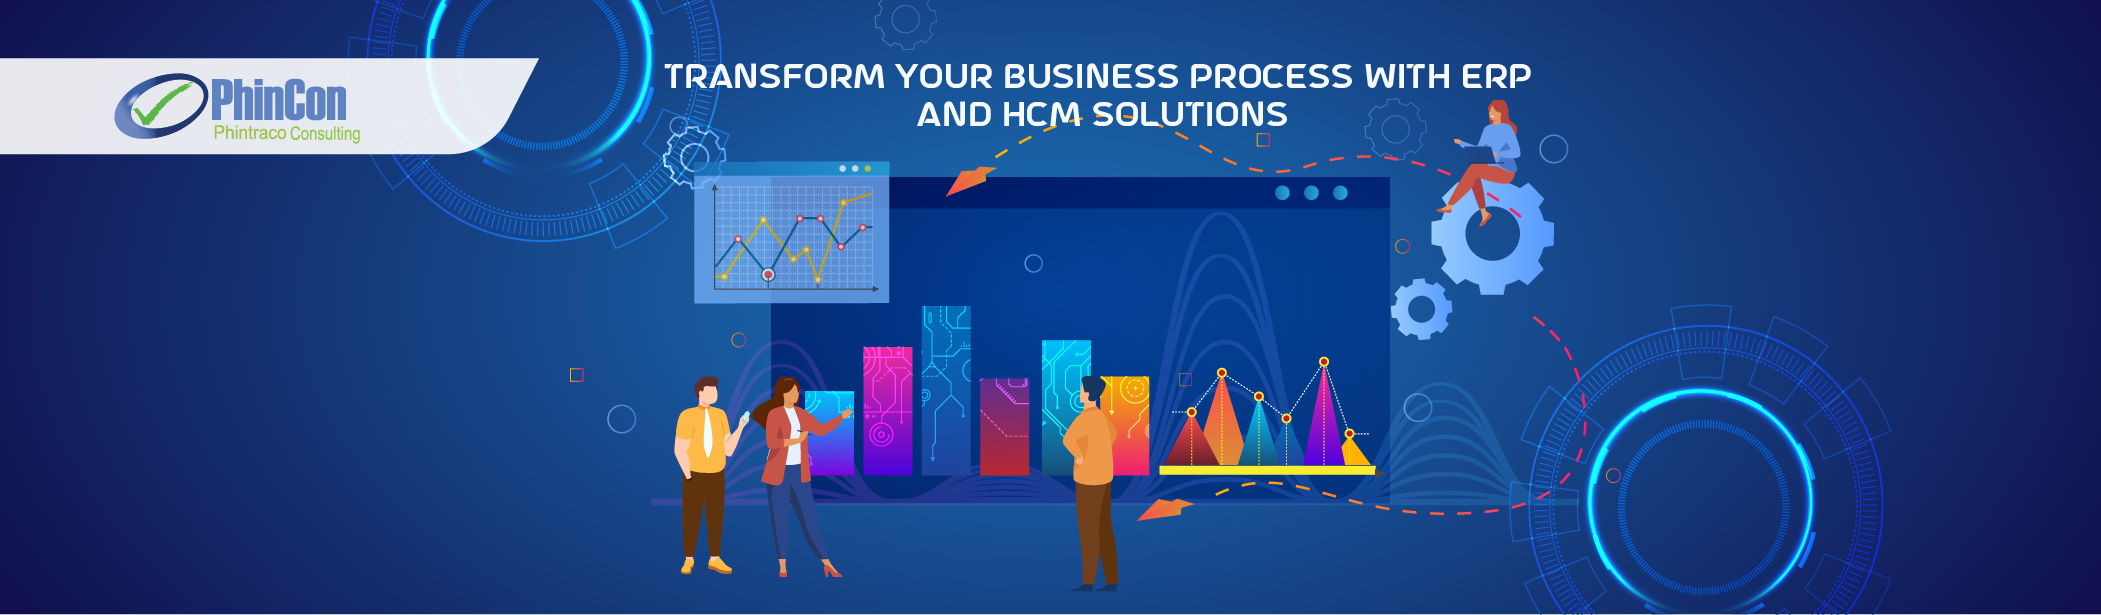 Transform Your Business Processes with ERP and HCM Solutions